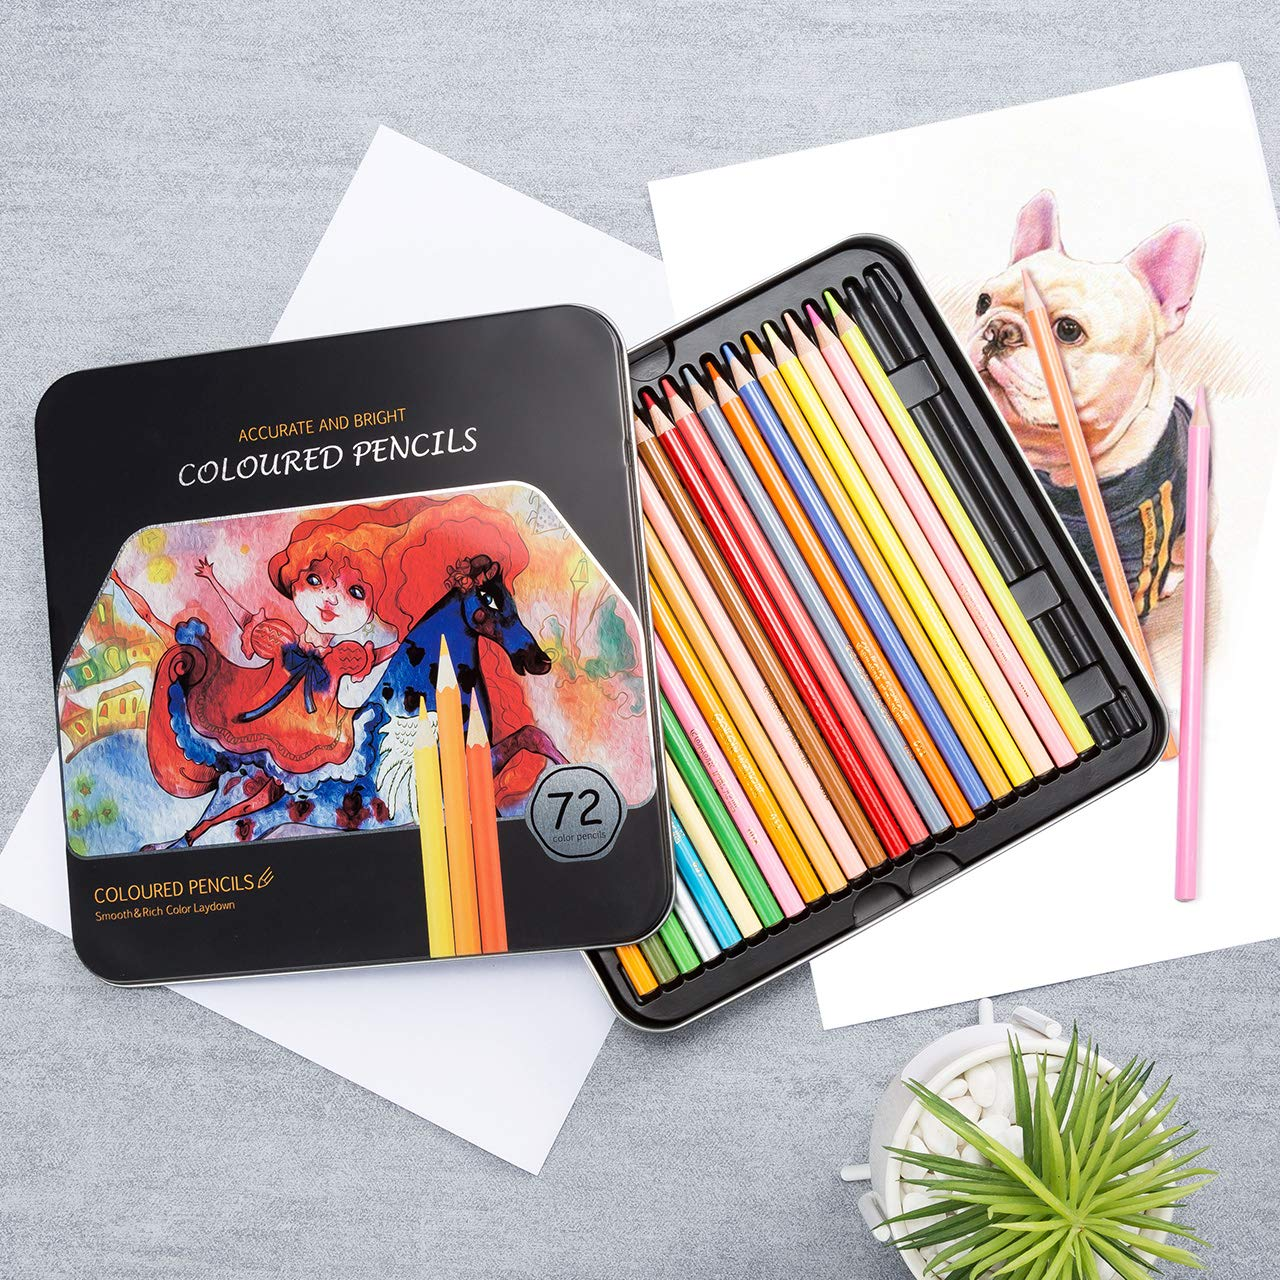 Sketching Premier Coloring Pencil Set with 3.3mm Hard Core VicTsing 72 Colored Pencils Drawing Colouring Books 2019 Upgraded Exquisite Mental Box Pre-Sharpened Pencils for Painting